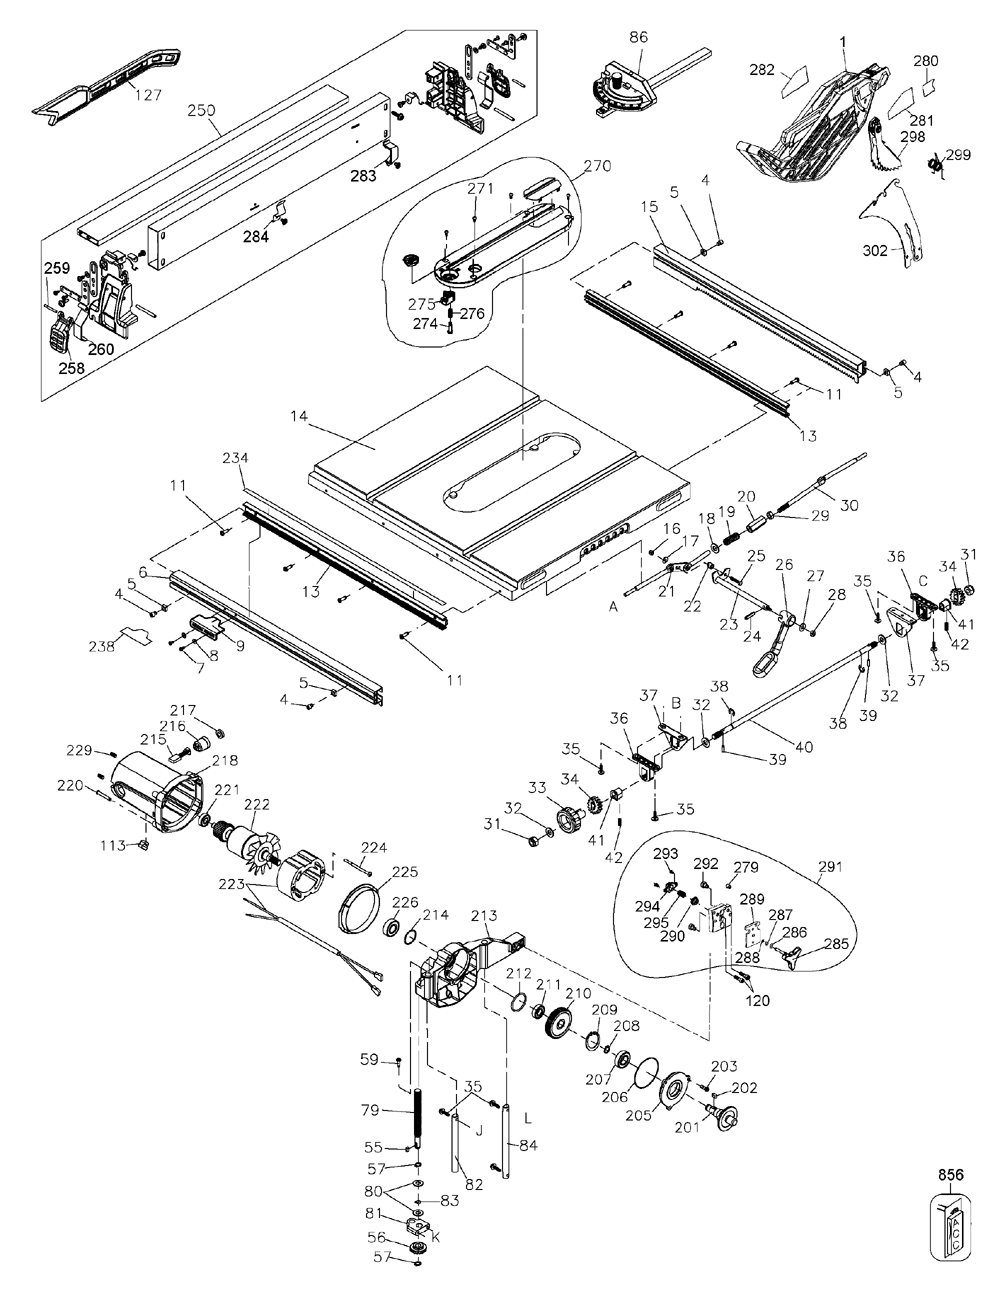 dewalt dwe7480 type20 parts schematic